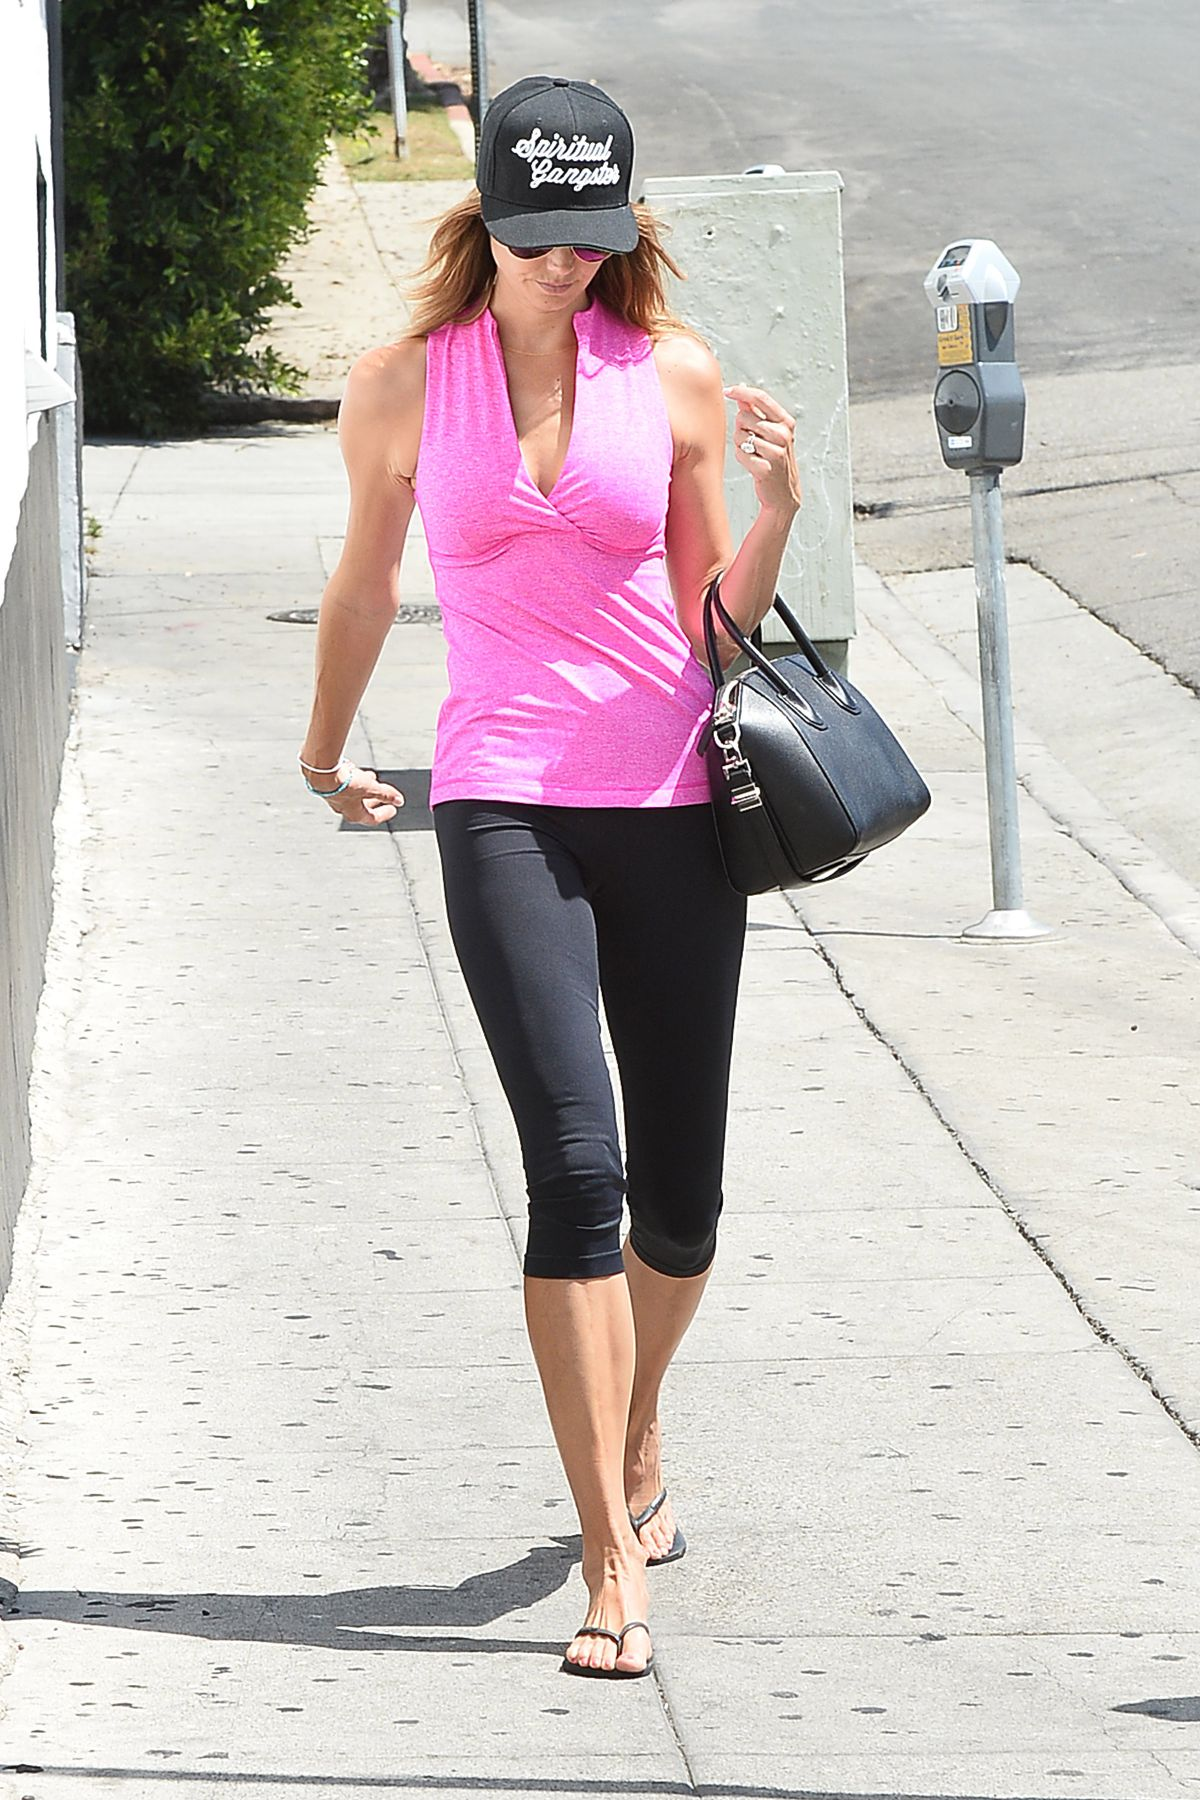 STACY KEIBLER in Leggings Out and About in Los Angeles 06/22/2015